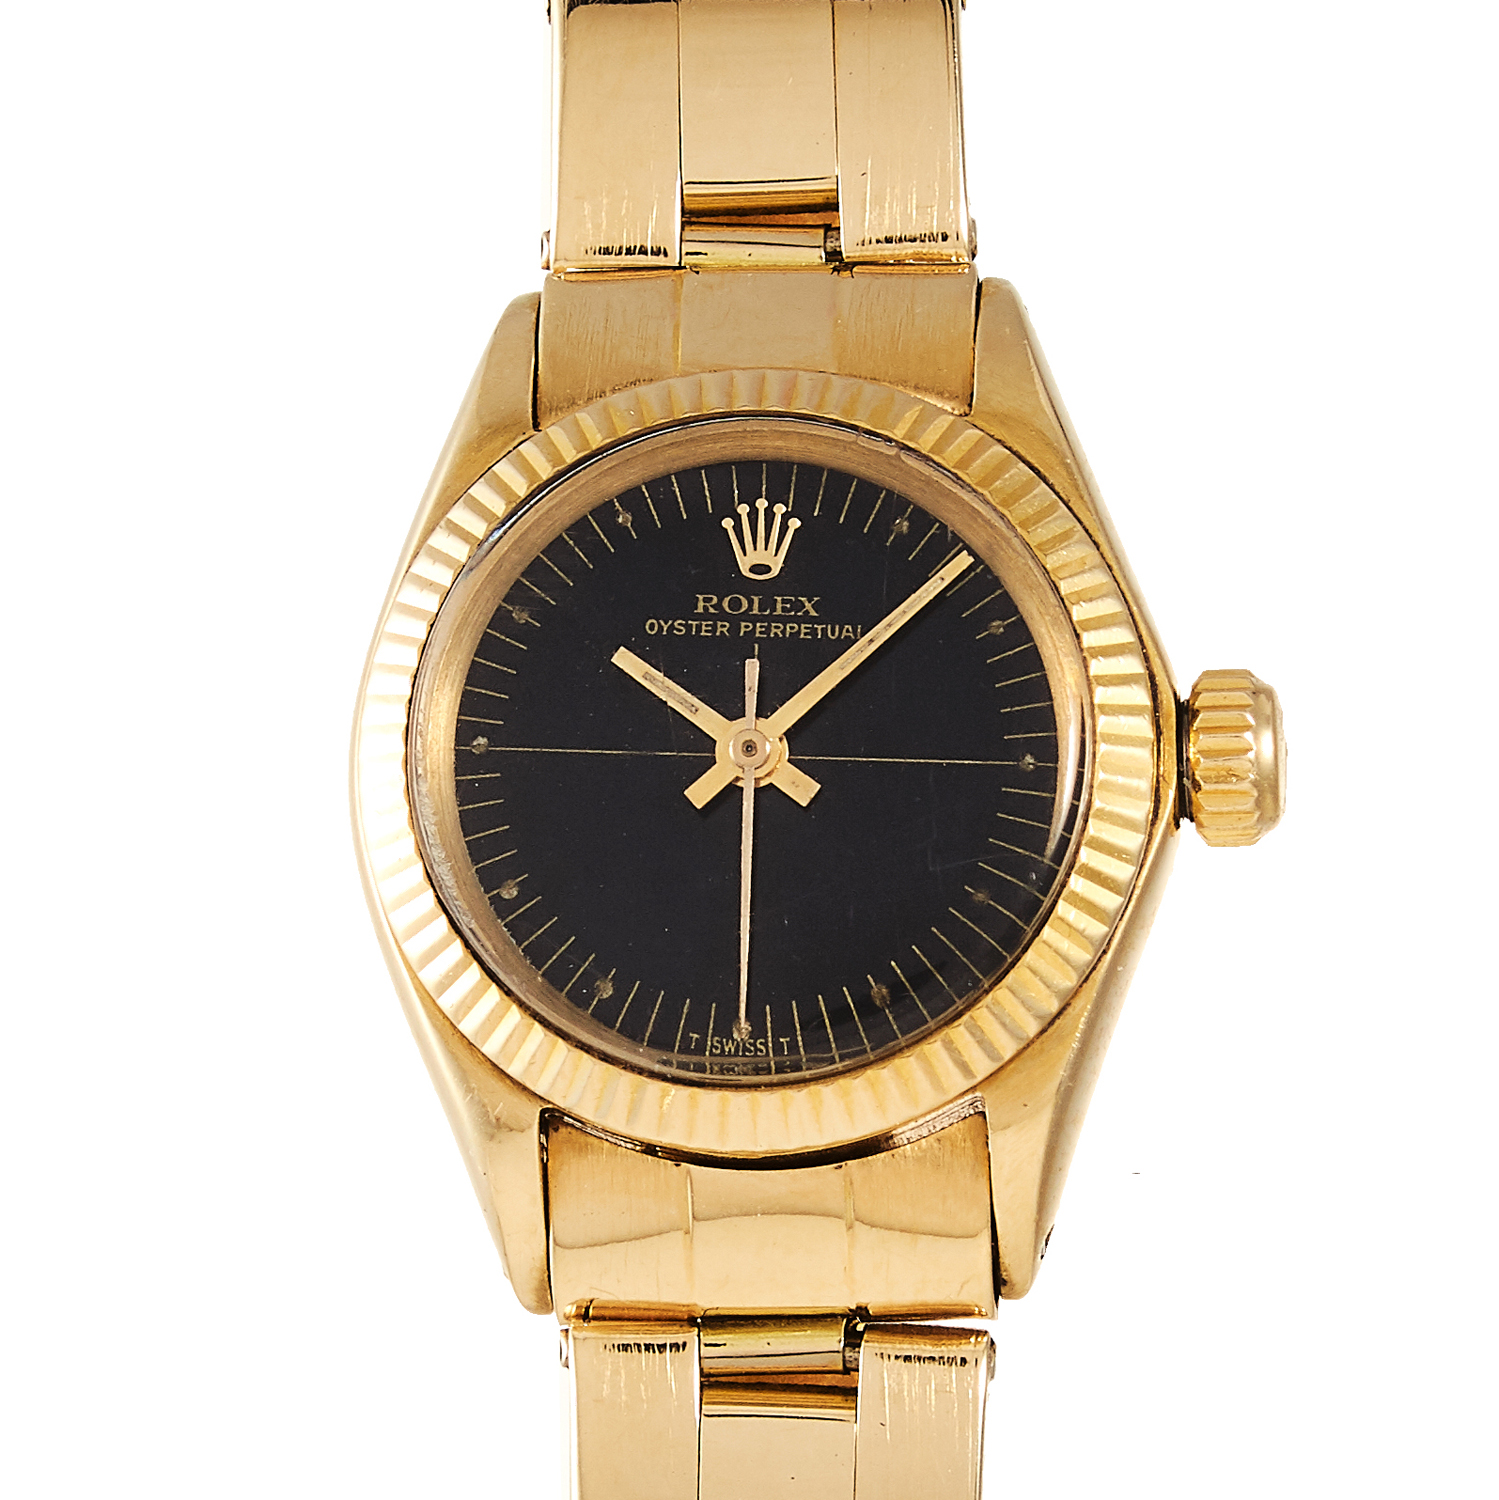 Los 132 - A LADIES 'OYSTER PERPETUAL' WRISTWATCH, ROLEX, CIRCA 1970 in 18ct yellow gold, with black dial,